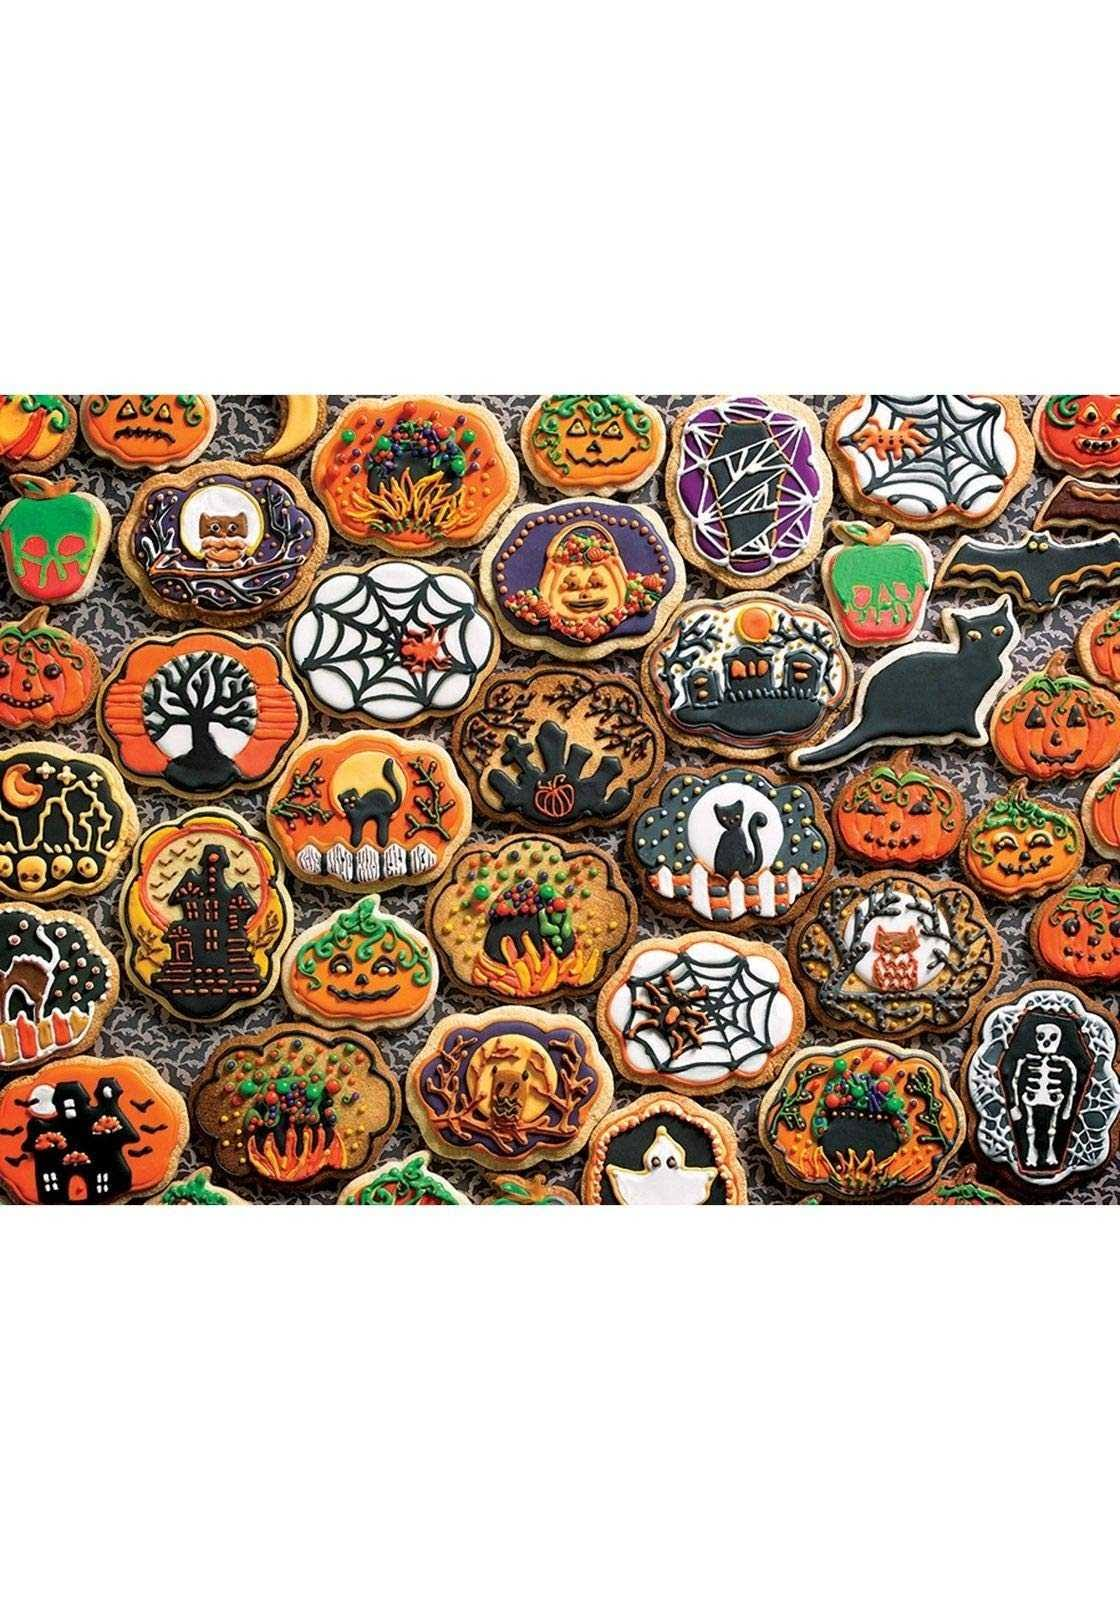 Cobble Hill Halloween Cookies 350 Family Pieces Puzzle